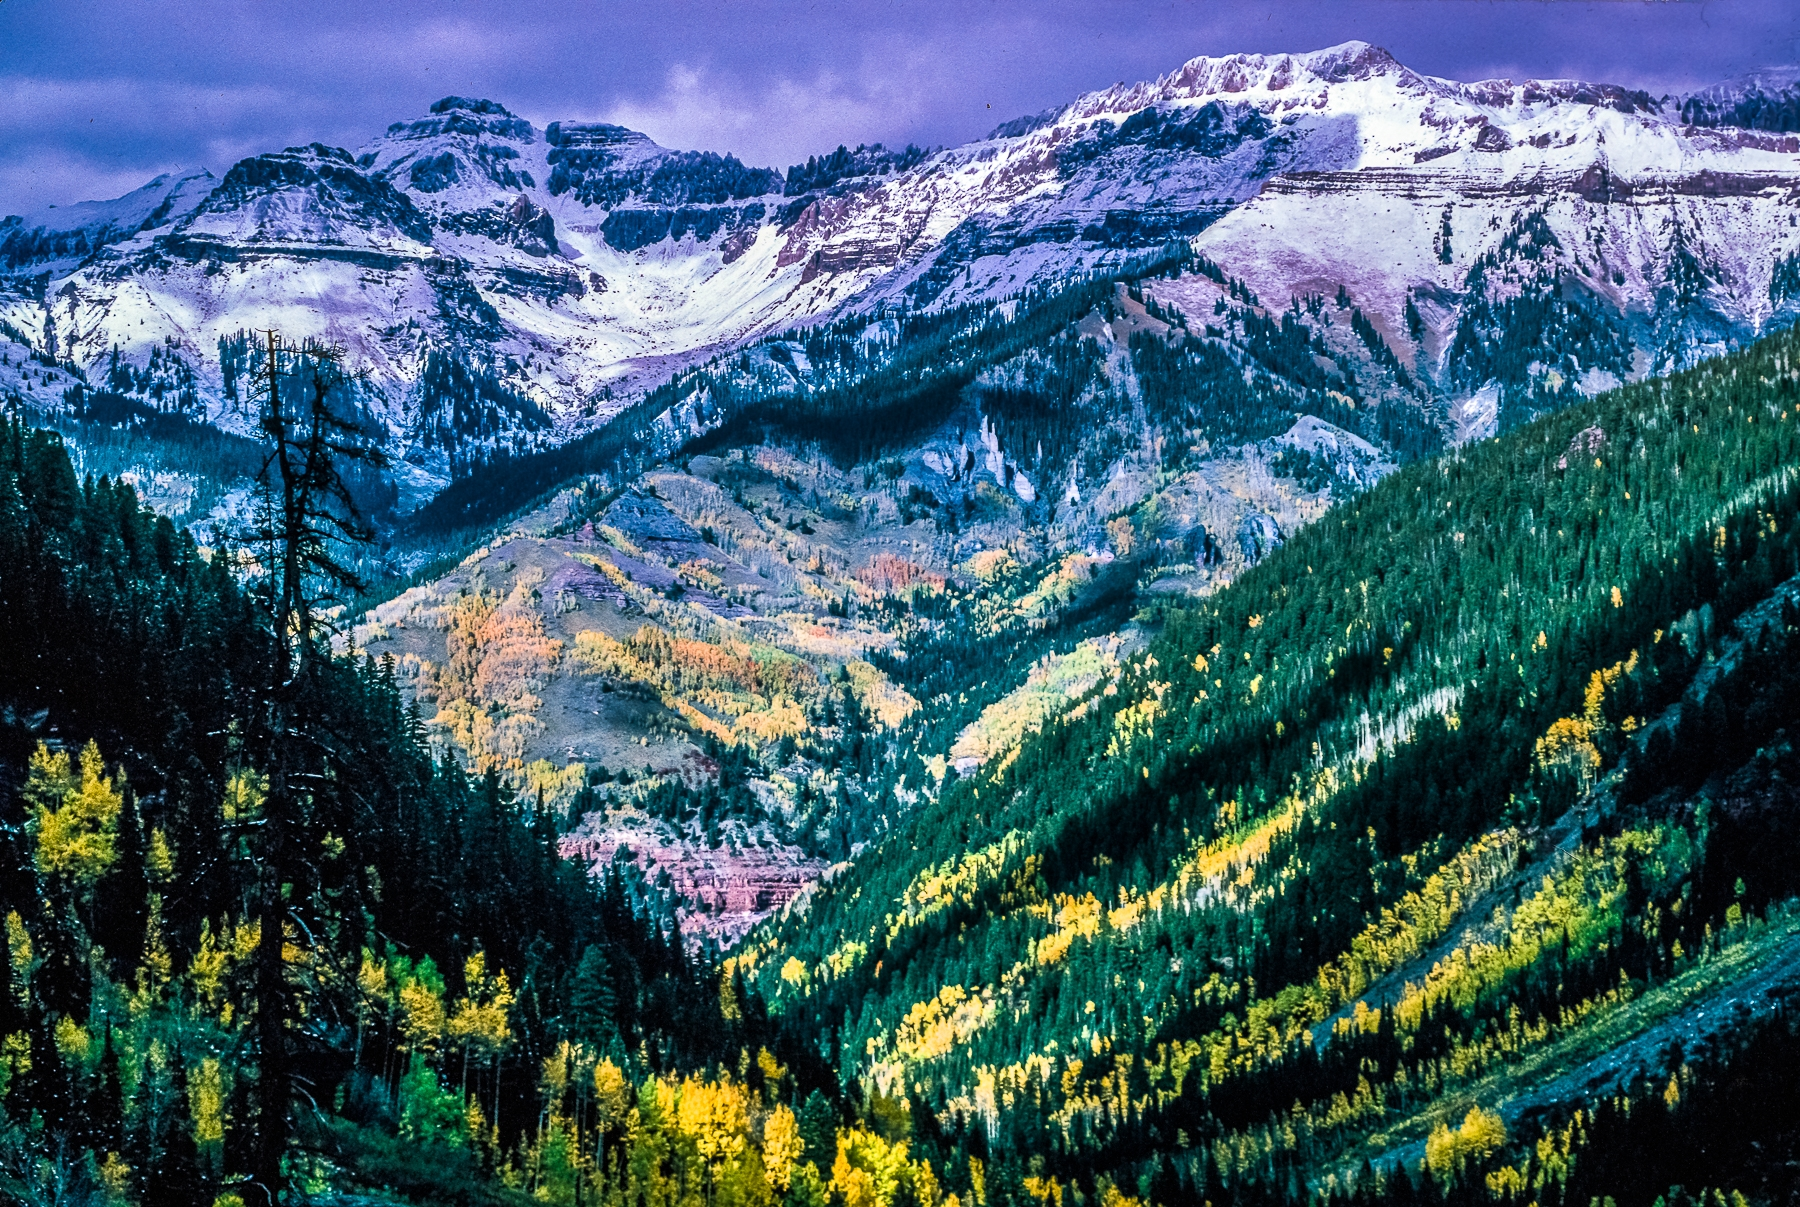 Cornucopia of Colors, Flowering Rocky Mountains